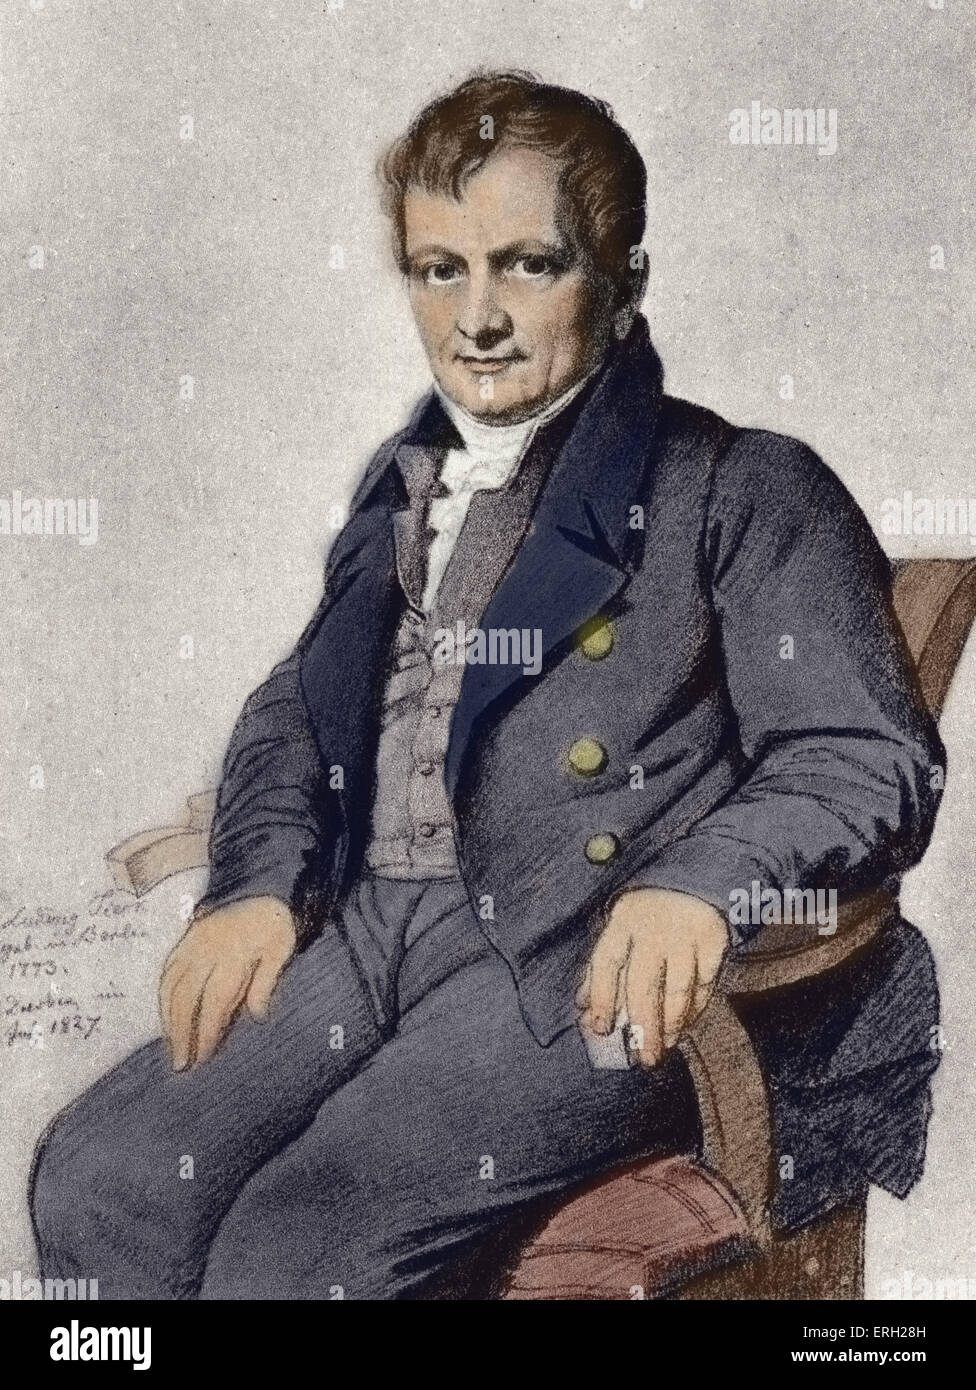 Ludwig Tieck portrait - after painting by K C Vogel von Vogelstein. German writer on Shakespeare 31 st May 1773 - Stock Image